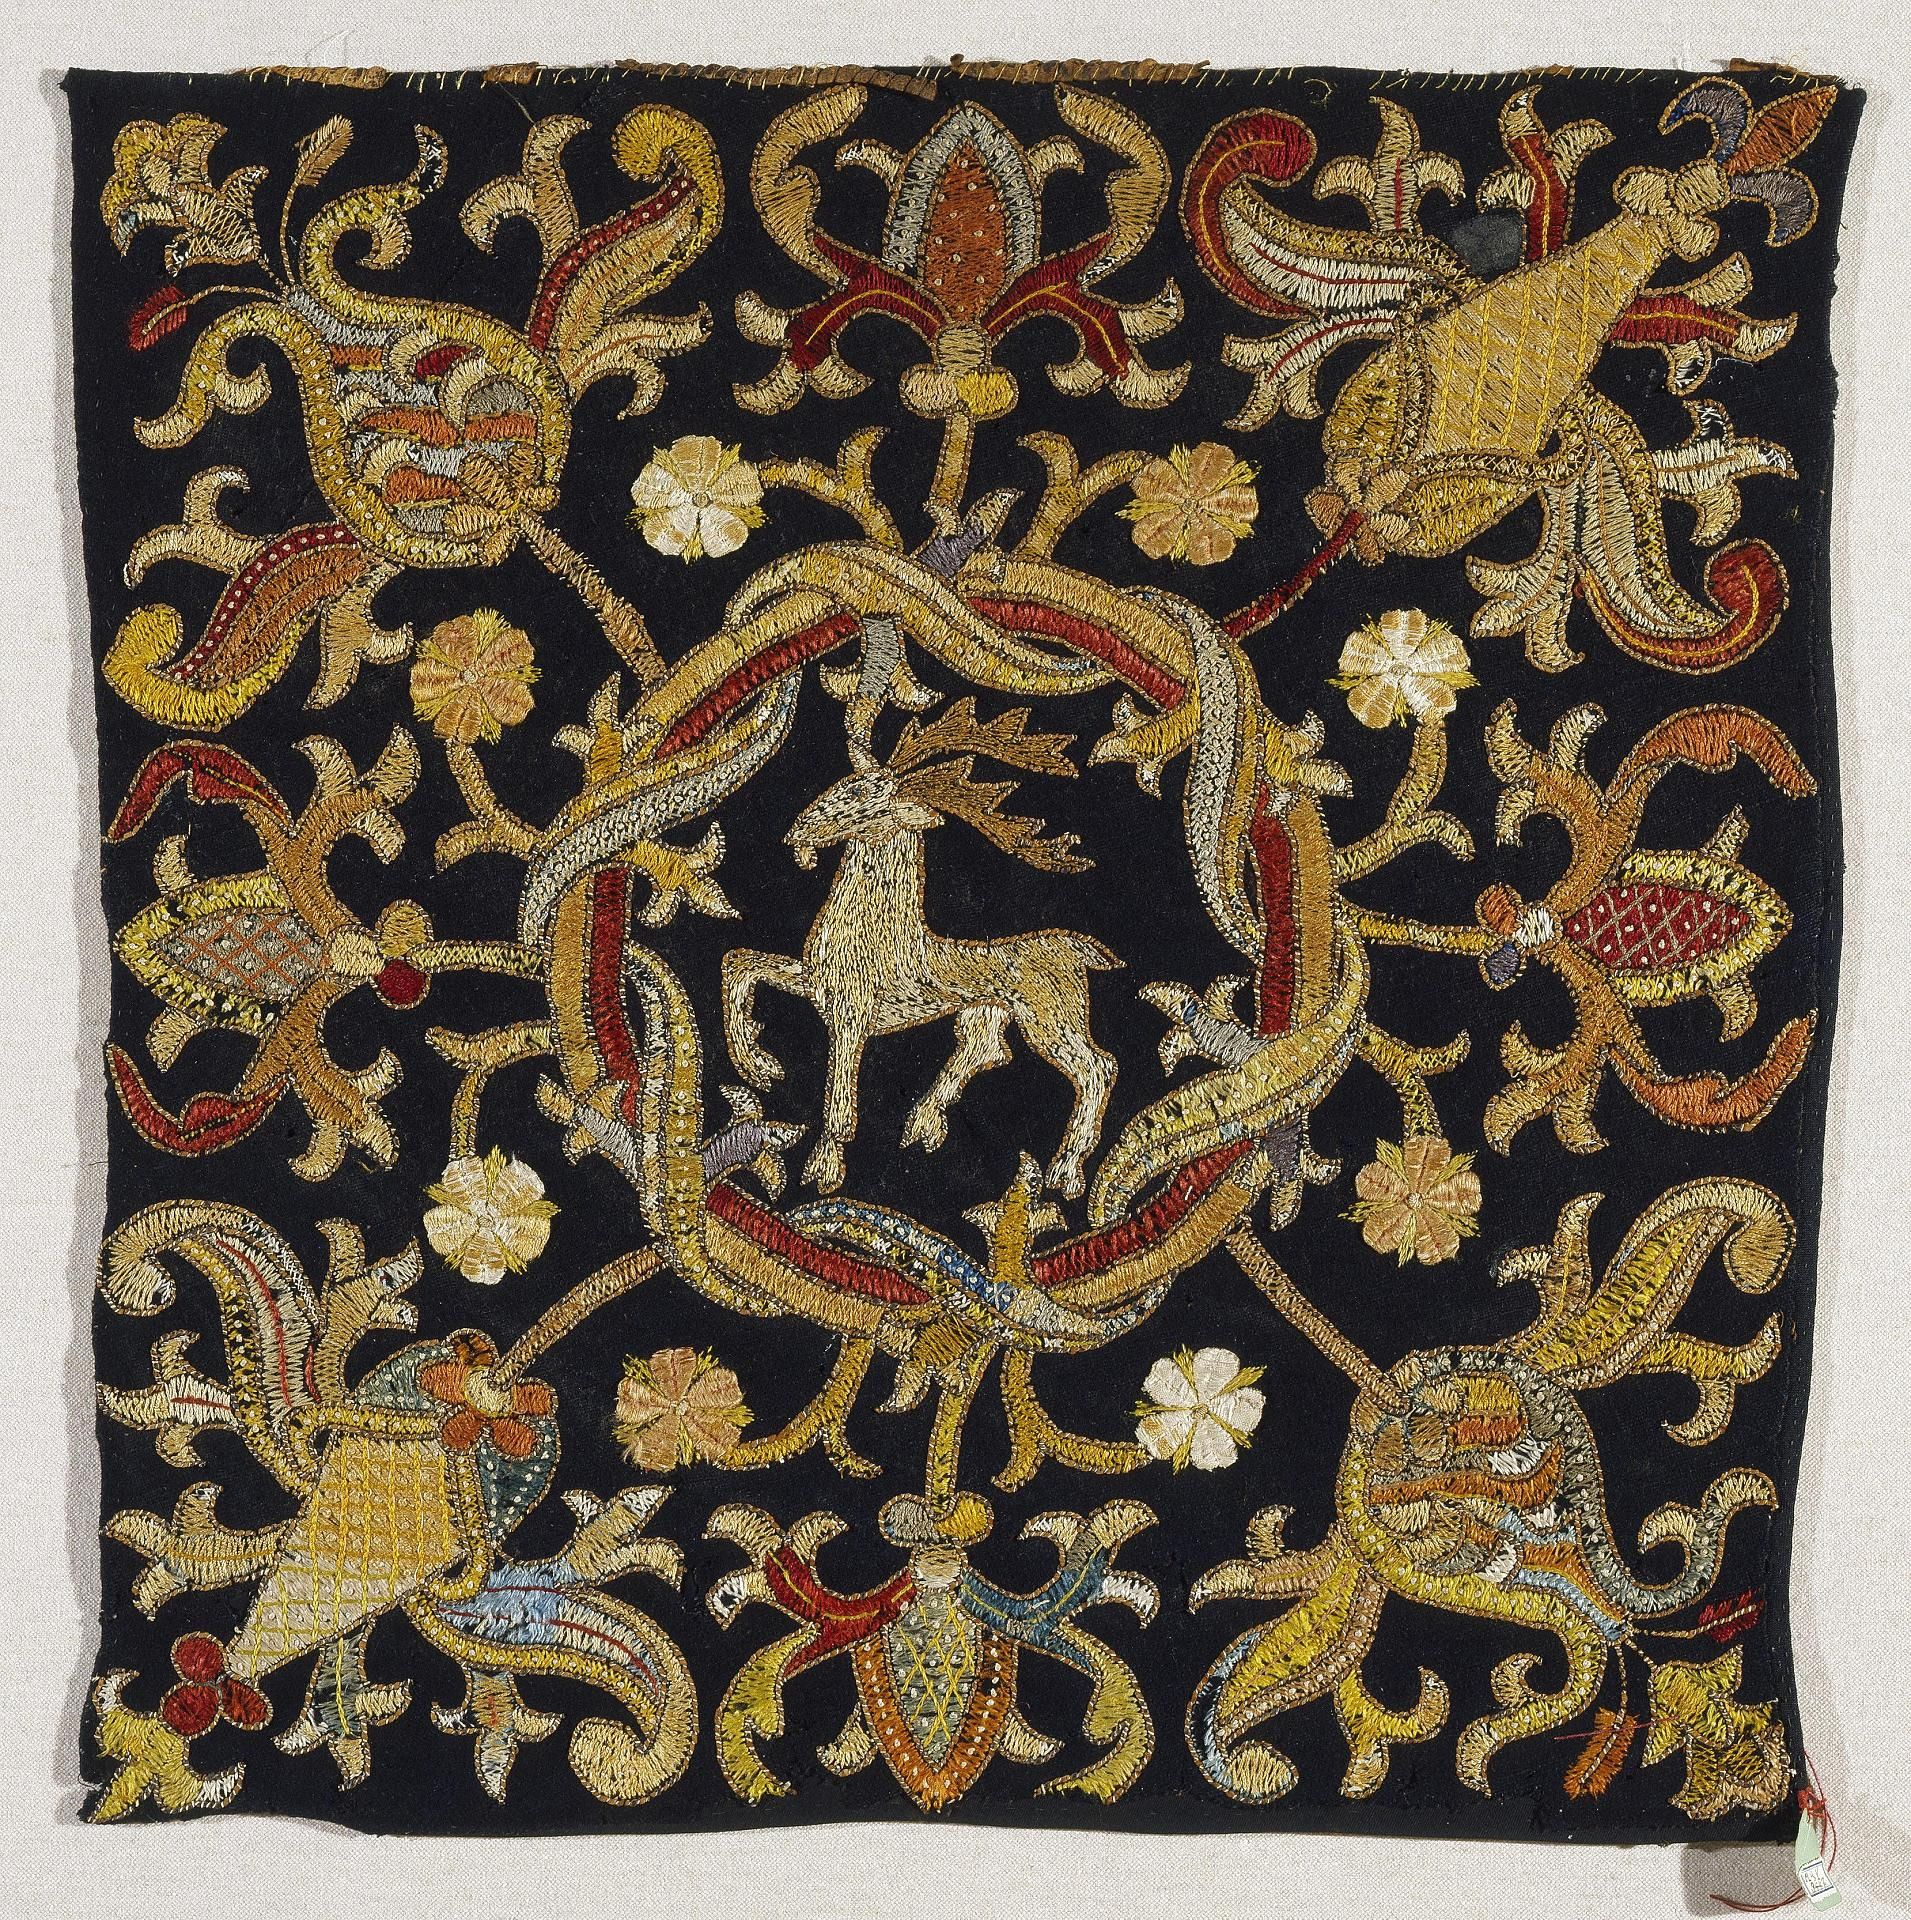 Title embroidery depicting a deer place of creation germany or